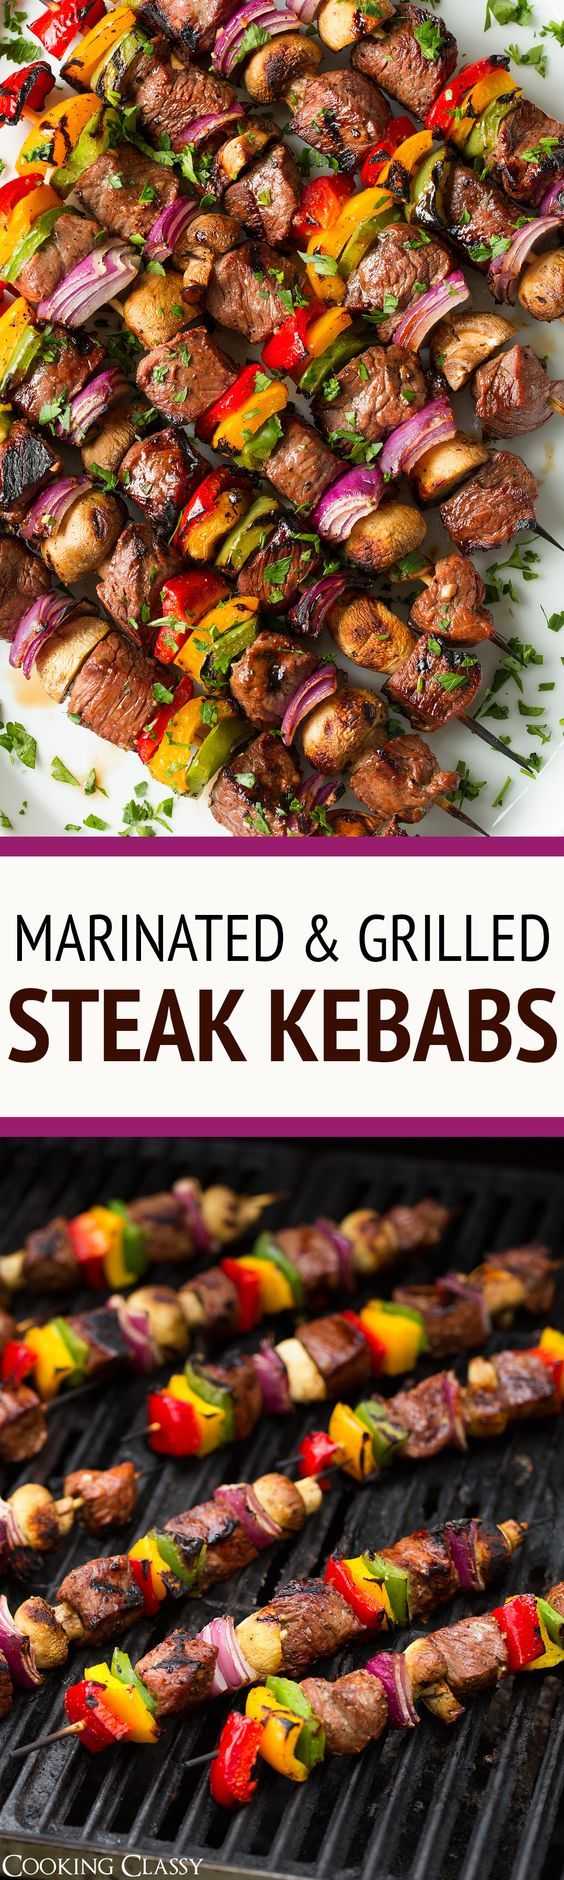 Steak Kebabs